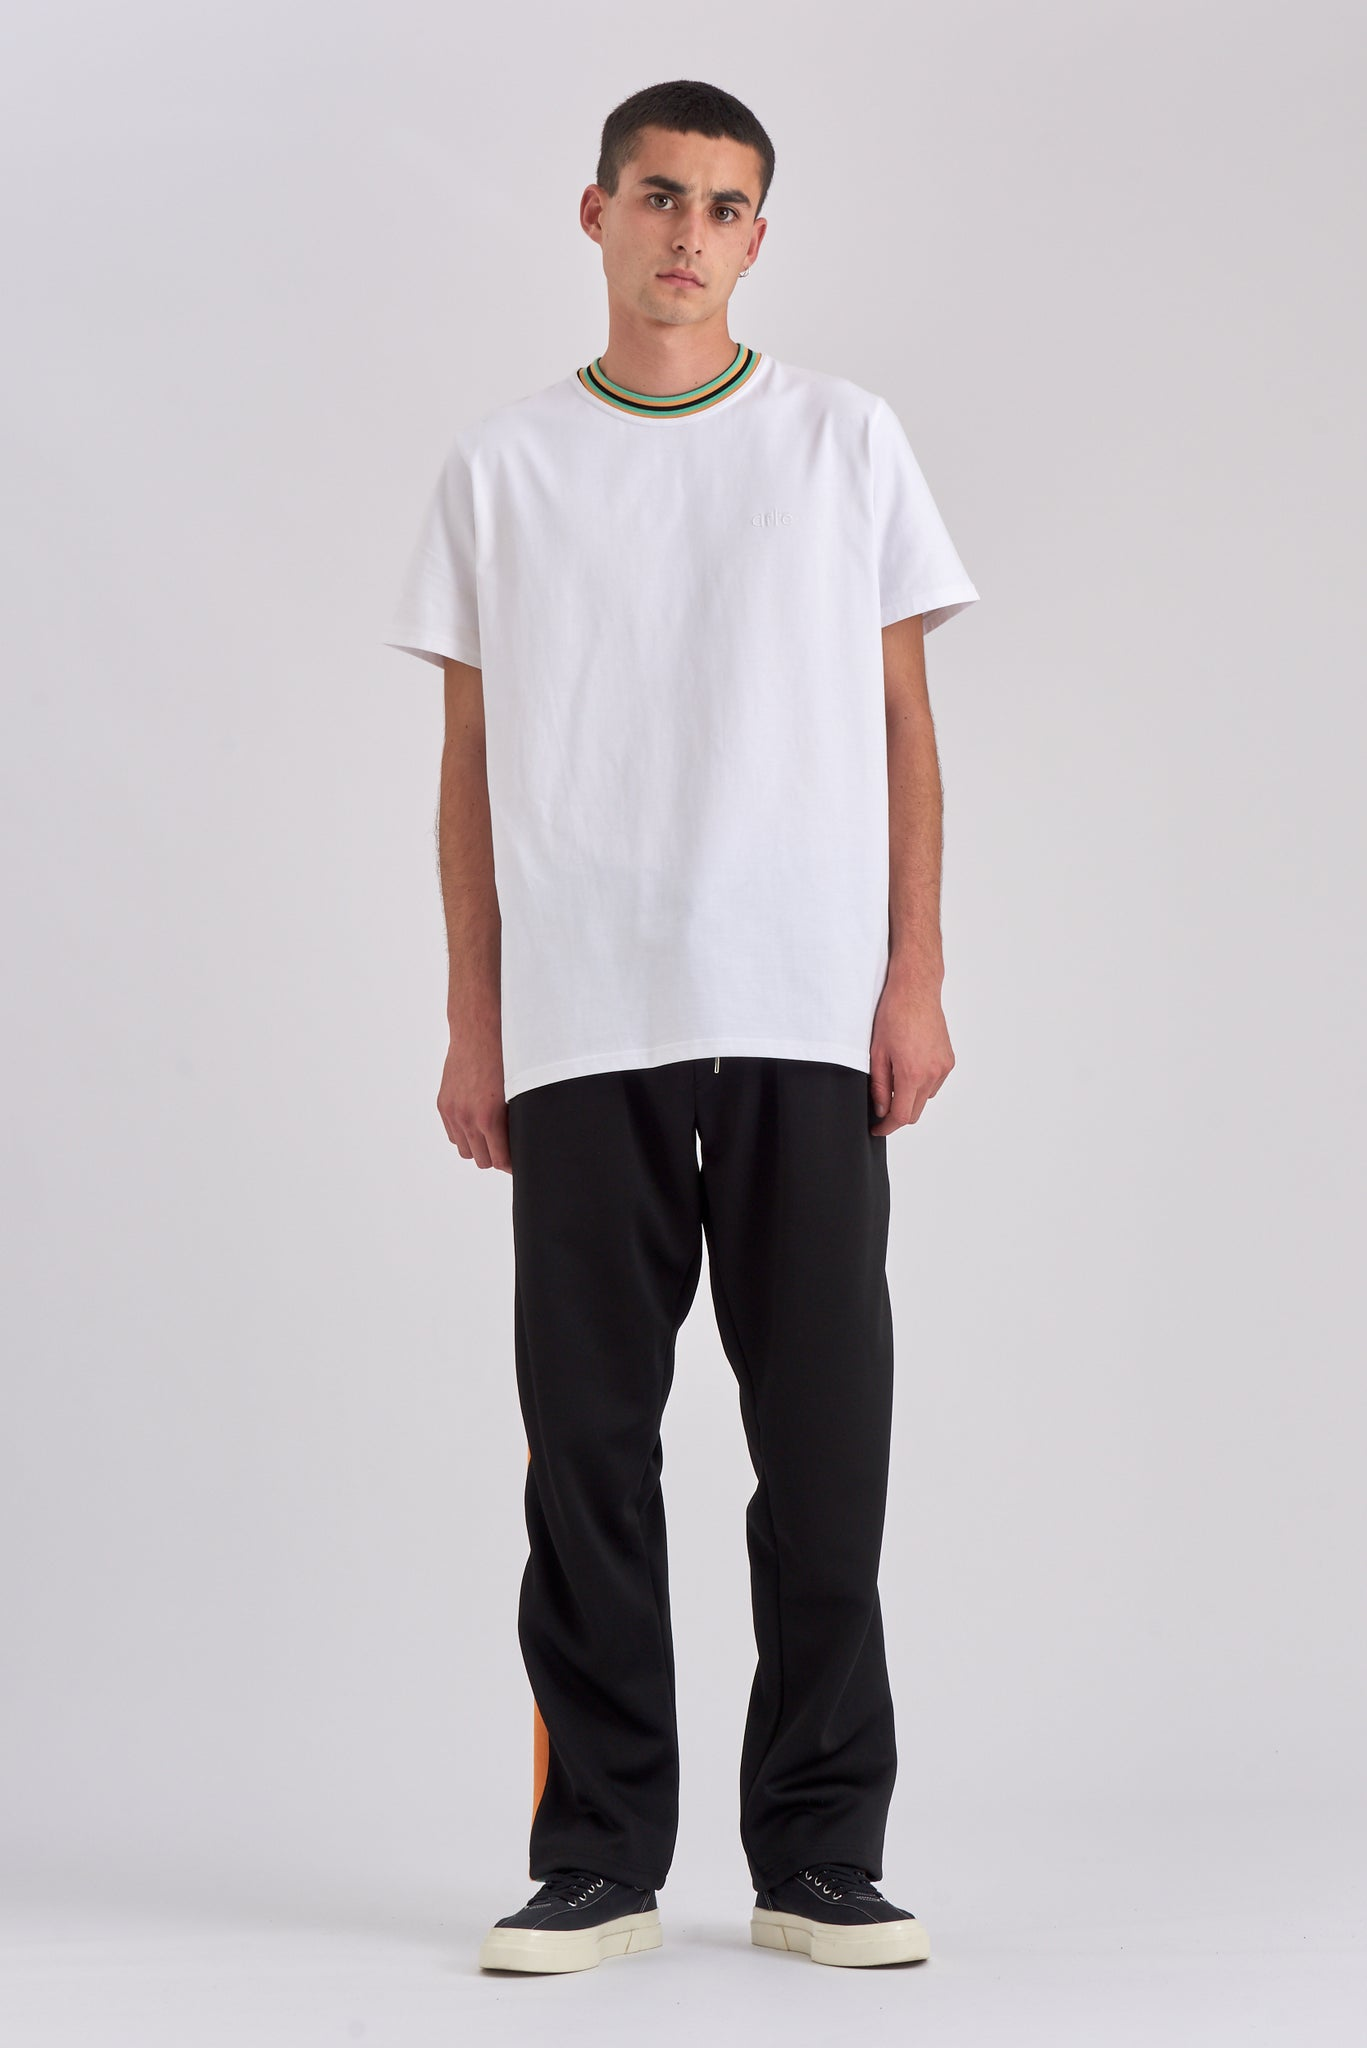 Tyler Collar White T-shirt - Arte Antwerp